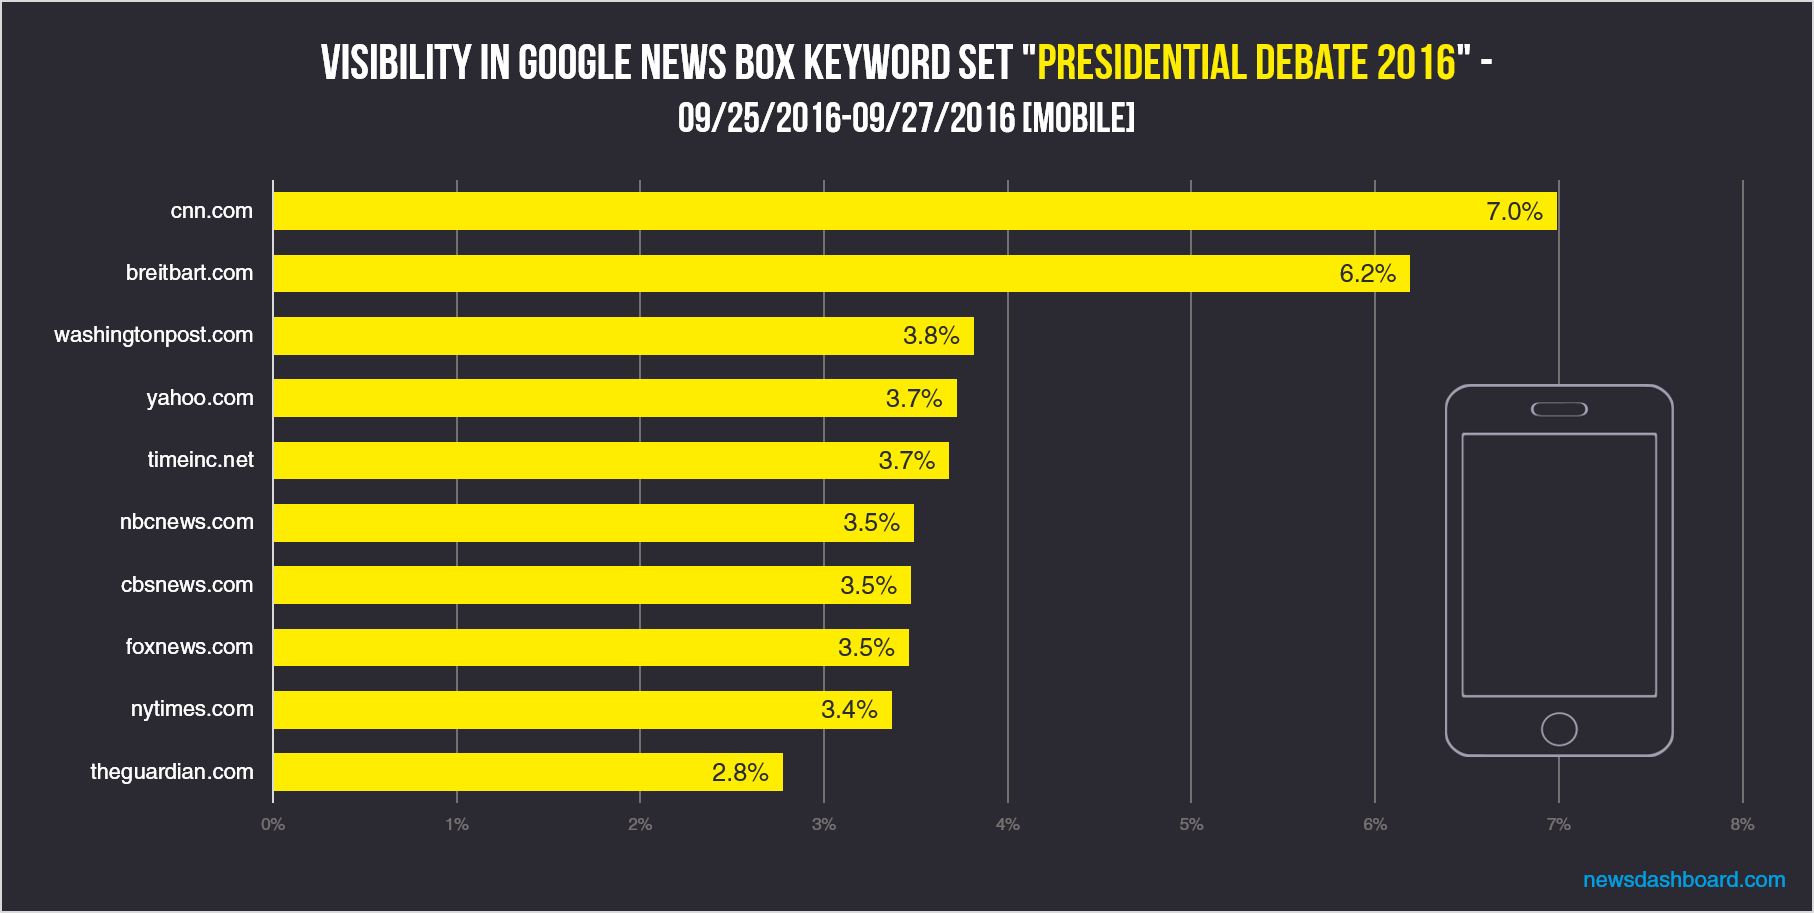 cnn also winner for mobile, differences on the second and third place